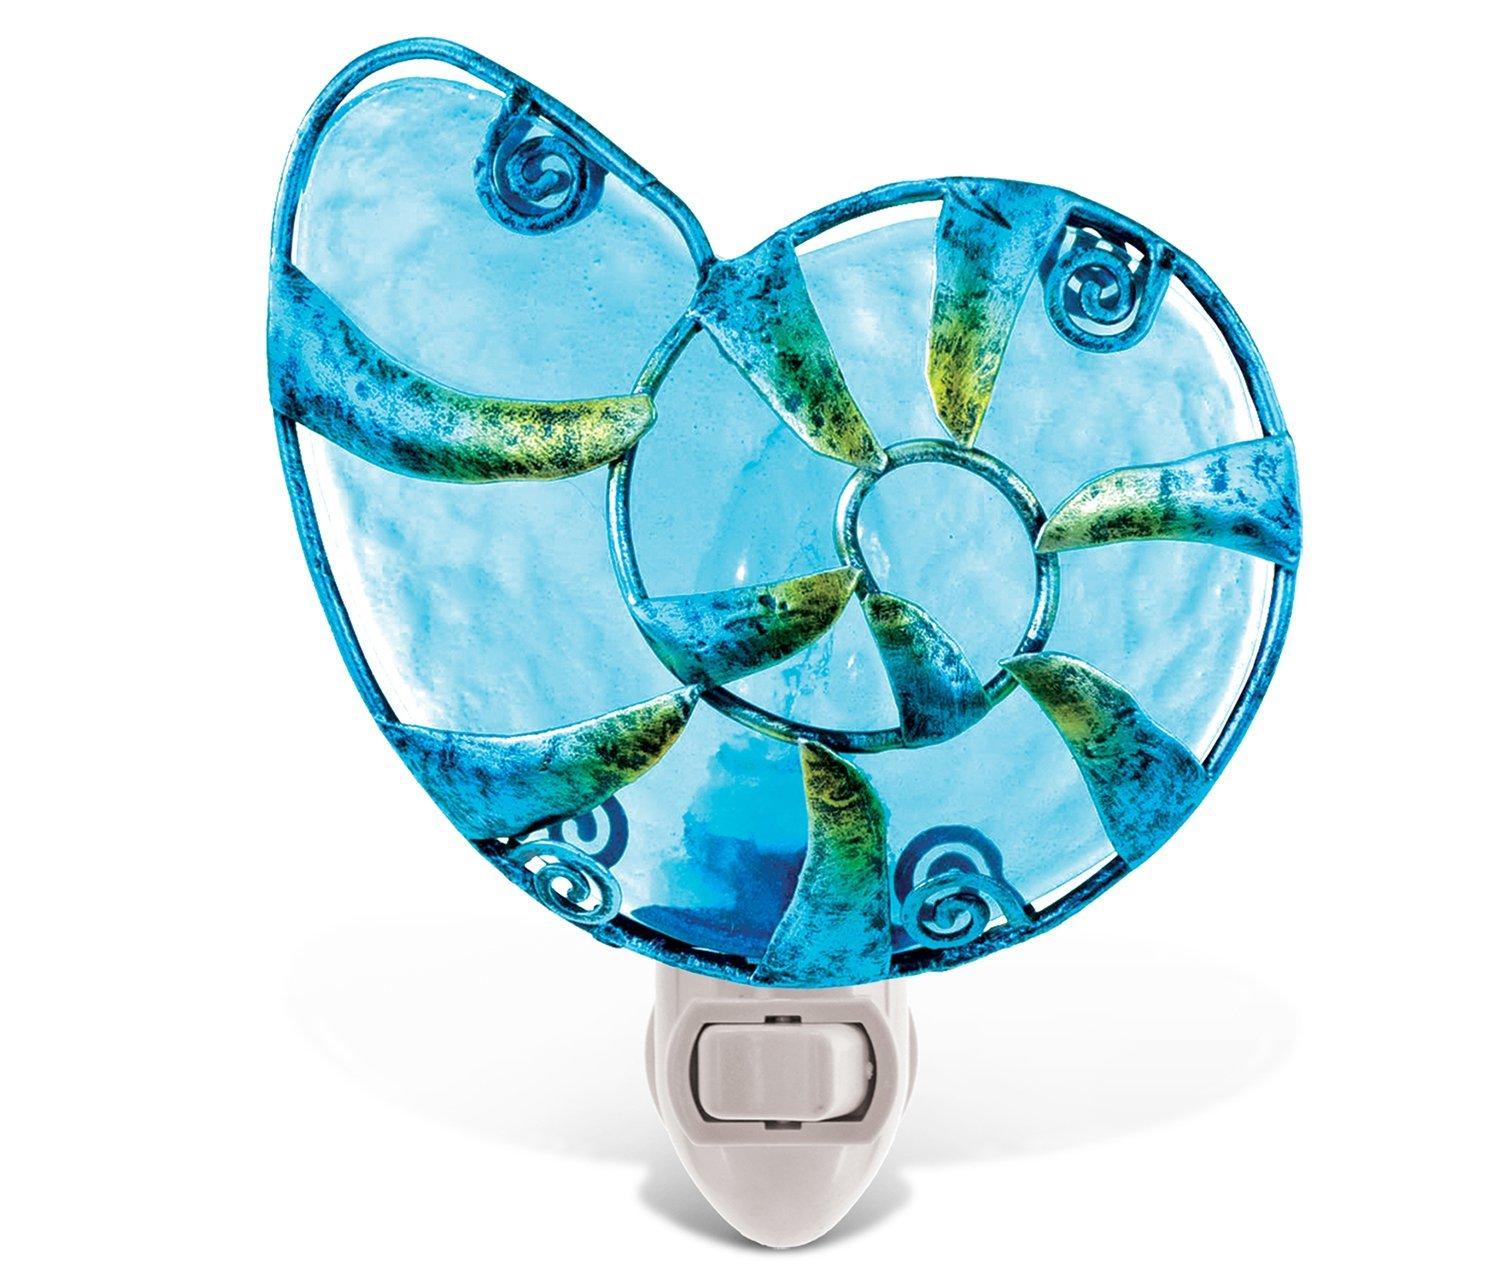 Puzzled Shell Night Light Decor - Metal And Glass Lights Seashells Plug In Receptacle With On Off Manual Switch - Ocean Themed Nursery Lamps Incandescent Removable Outlet Home Fixture - Item 9612